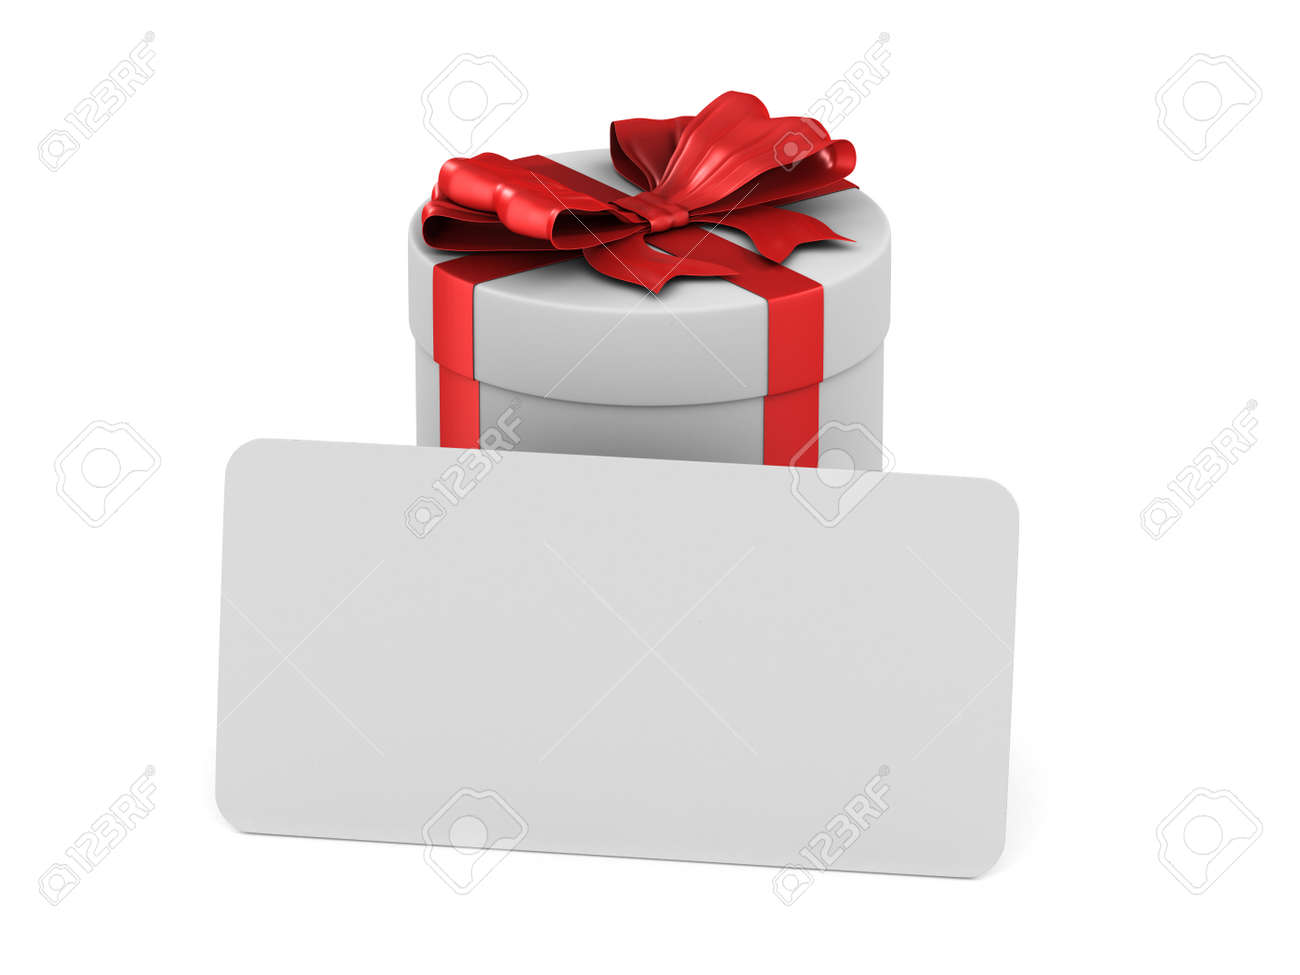 white box with red bow and label on white background. Isolated 3D illustration - 128288653